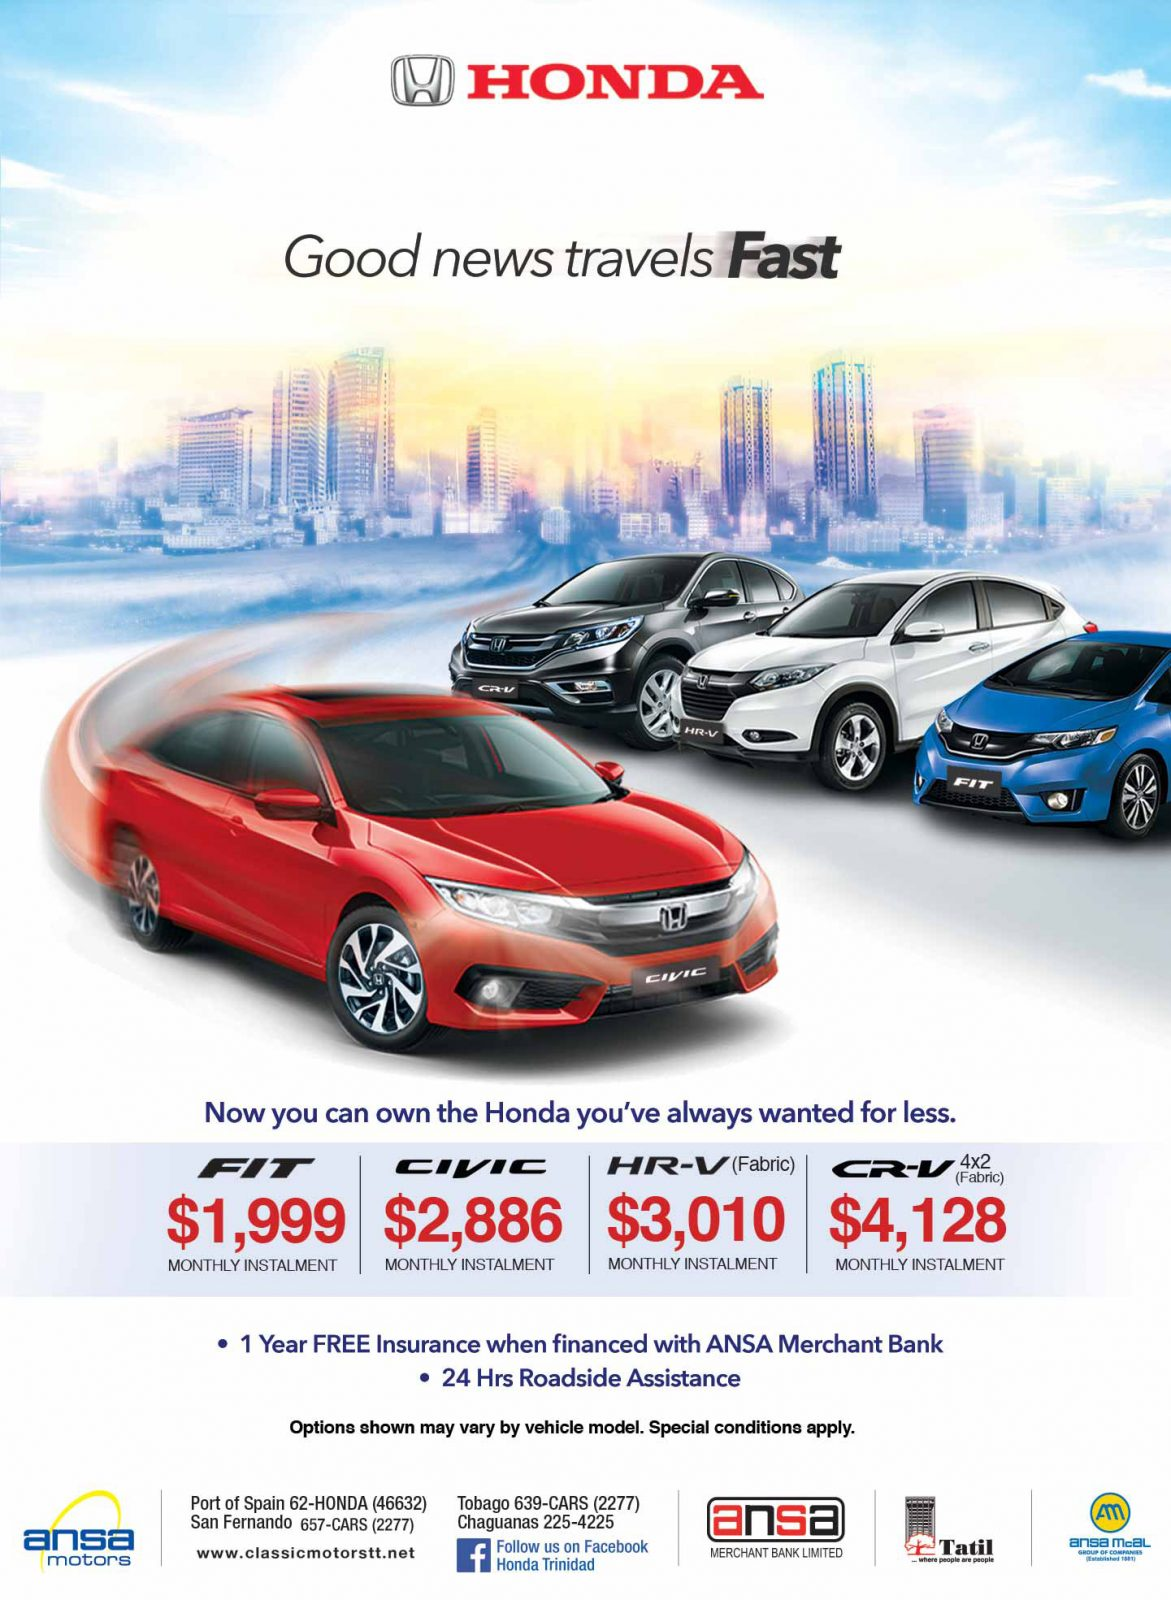 honda-good-news-travels-fast